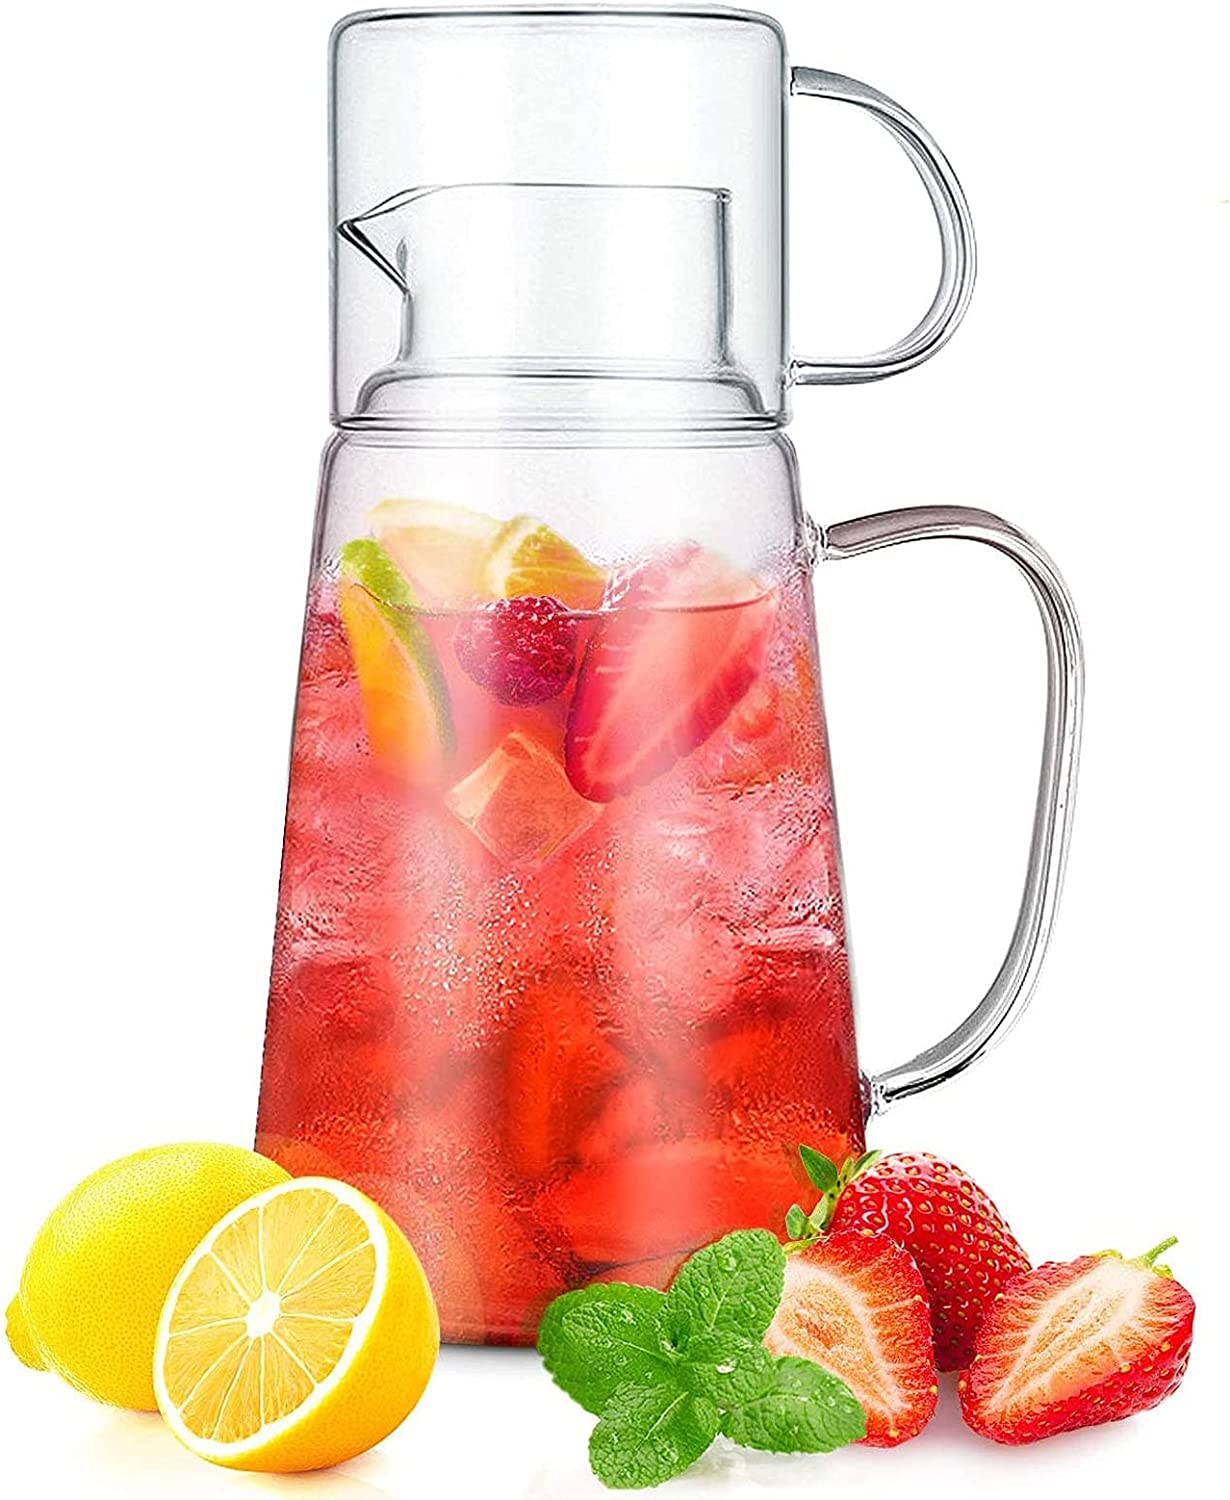 Raleigh Mall Heat-Resistant Glass Water Carafe Set Pitcher hot Limited time cheap sale jug Tea